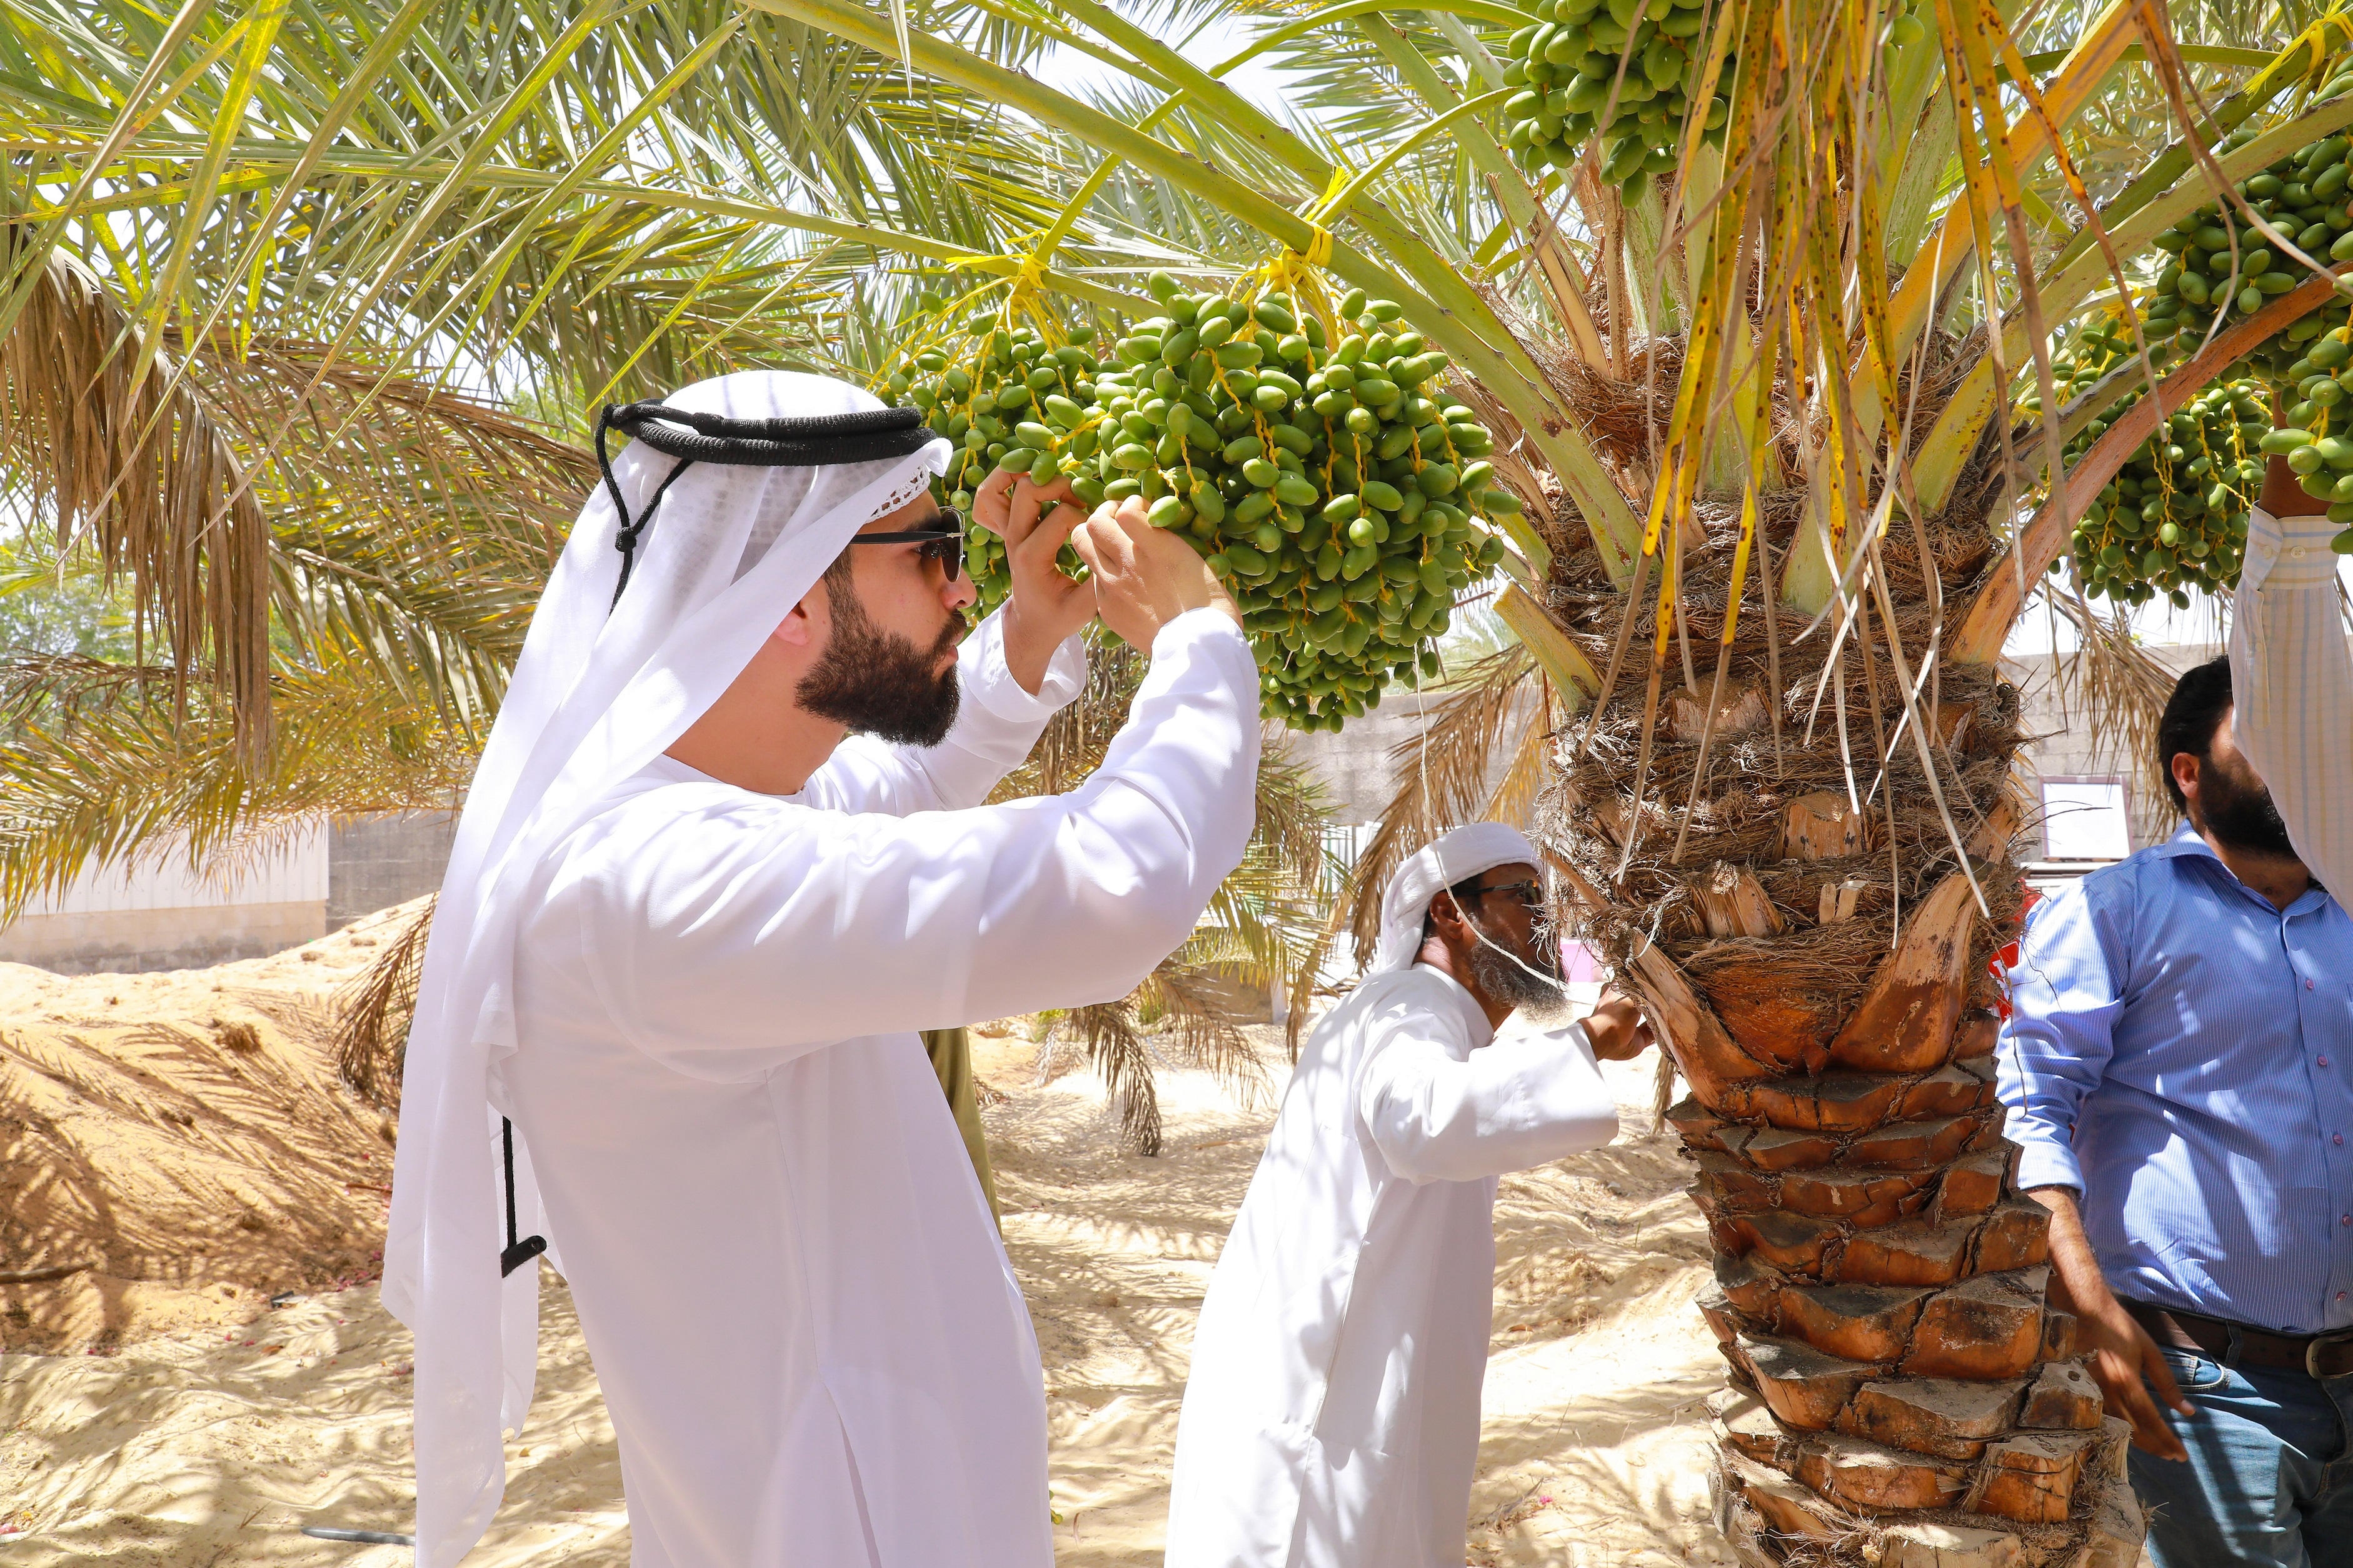 adafsa carries out 130,000 extension visits to over 22,000 farms within 6 months 2